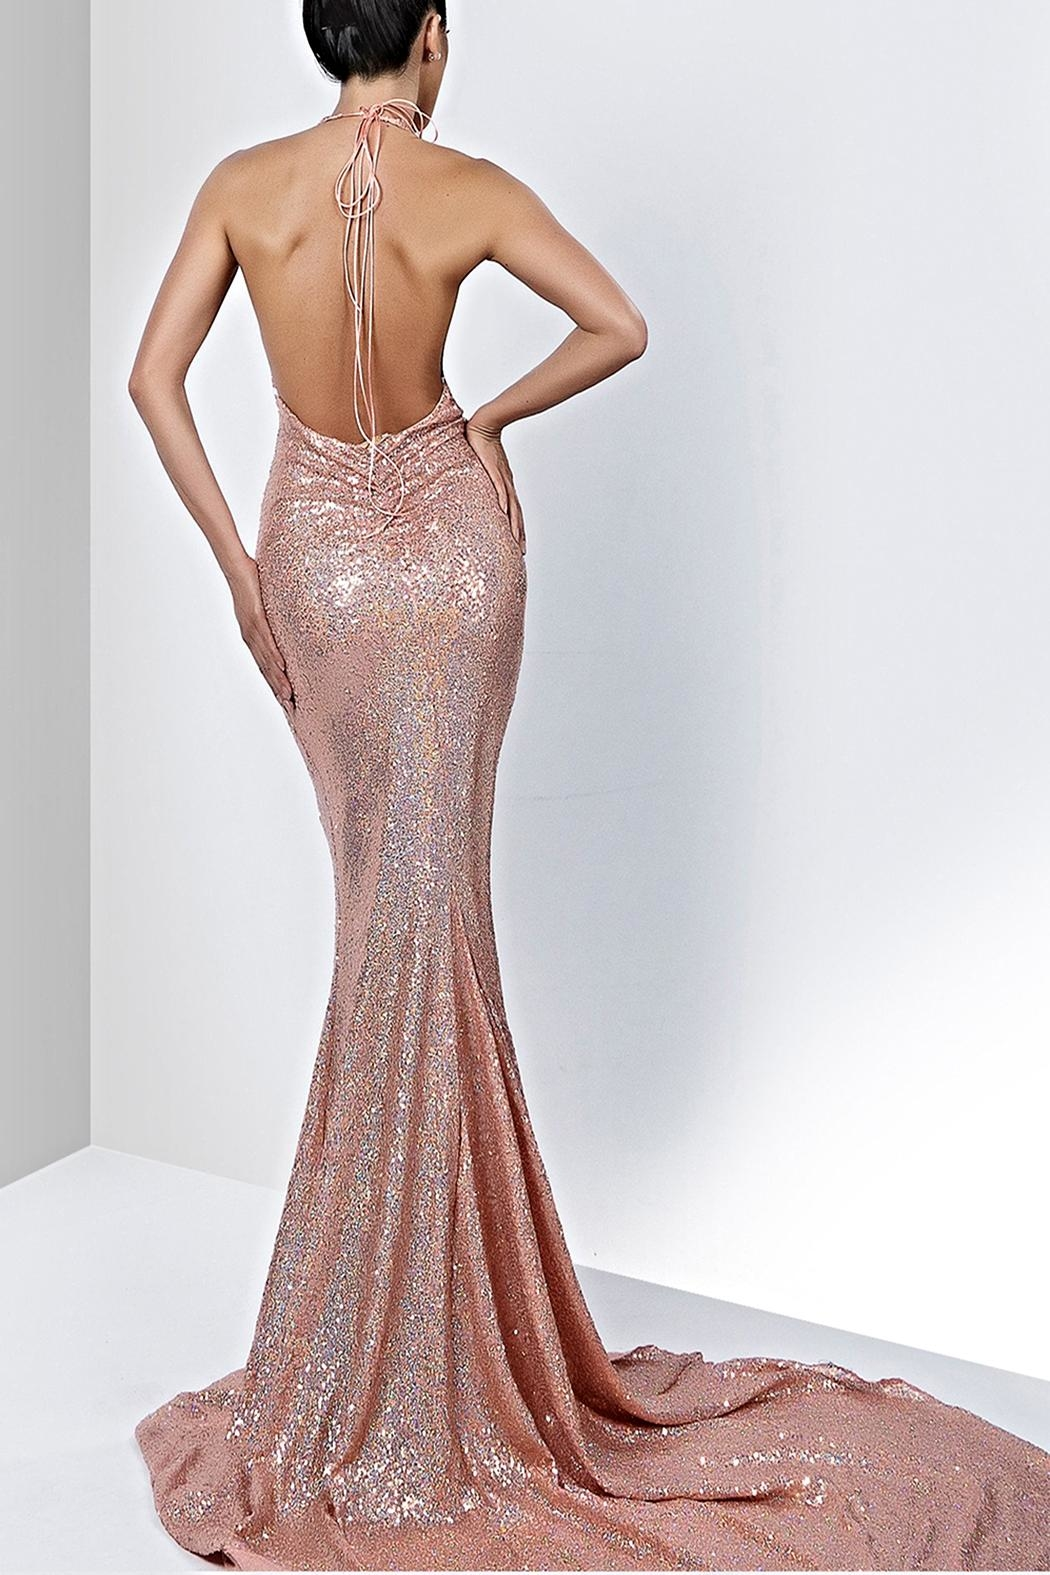 Savee Couture Savee Sequin Maxi Dress - Front Full Image